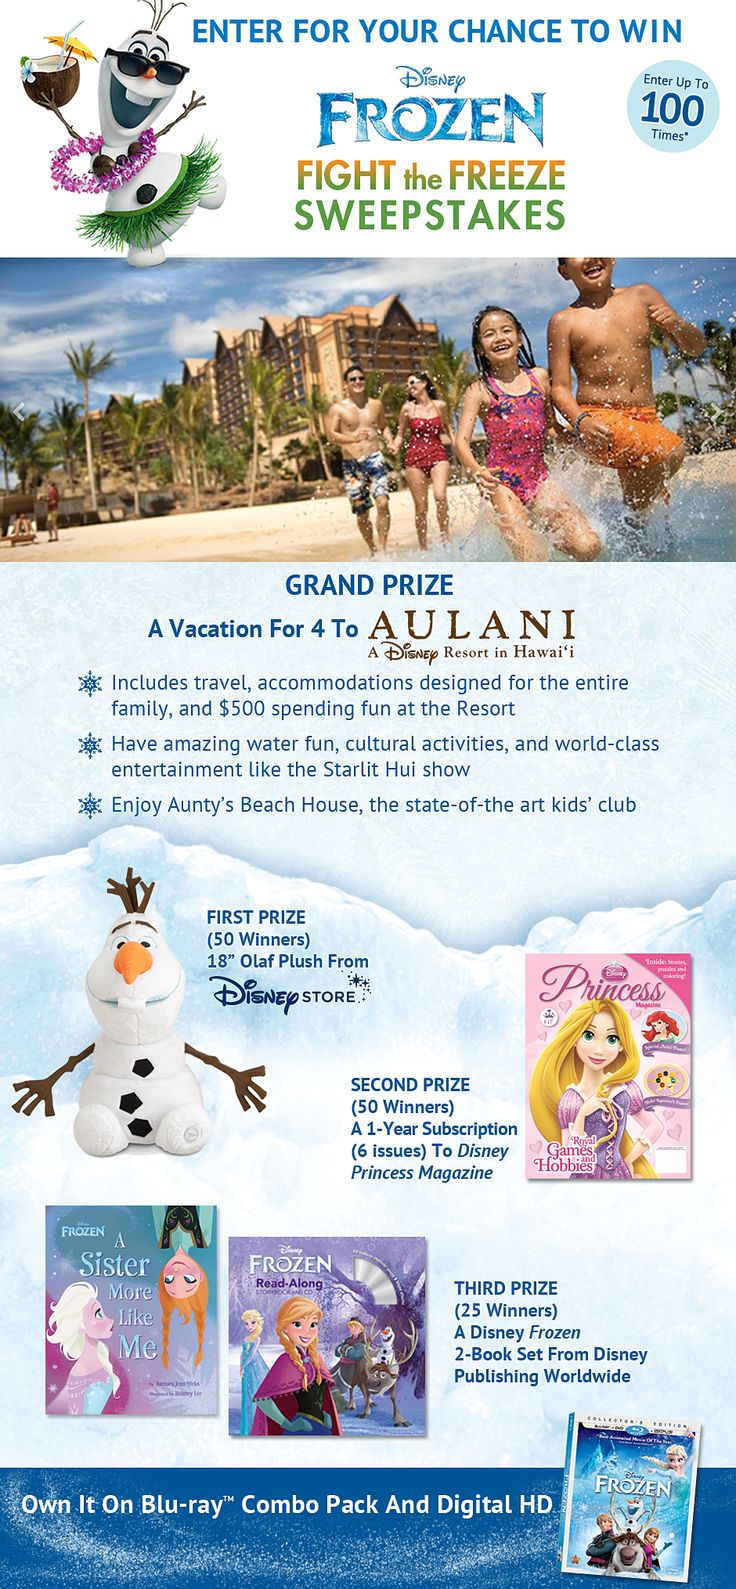 "Sweepstakes starts1/31/14, ends 6/30/14. you must be a member of DMR at the time of entry to enter the Sweepstakes. If you are not a member of DMR you may become a member by visiting http://www.DisneyMovieRewards.com/hula (the ""DMR Website""). Membership is free. 1 Grand Prize winner will receive a 5 day/4 night trip for 4 people (Grand Prize winner and up to 3 travel companions) to O'ahu, Hawaii."